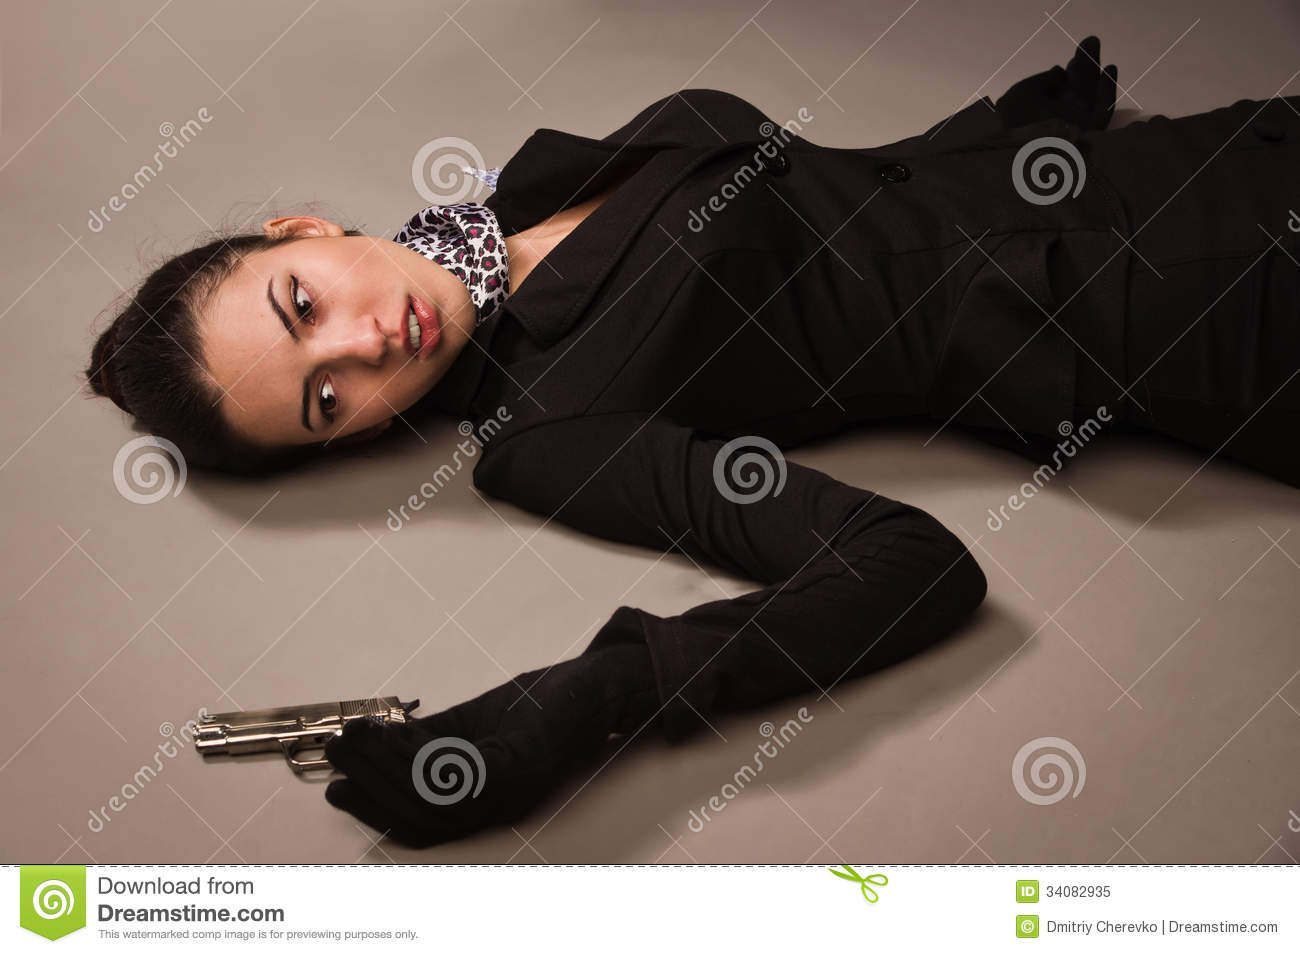 Woman In A Black Suit With Gun Lying On The Floor Royalty